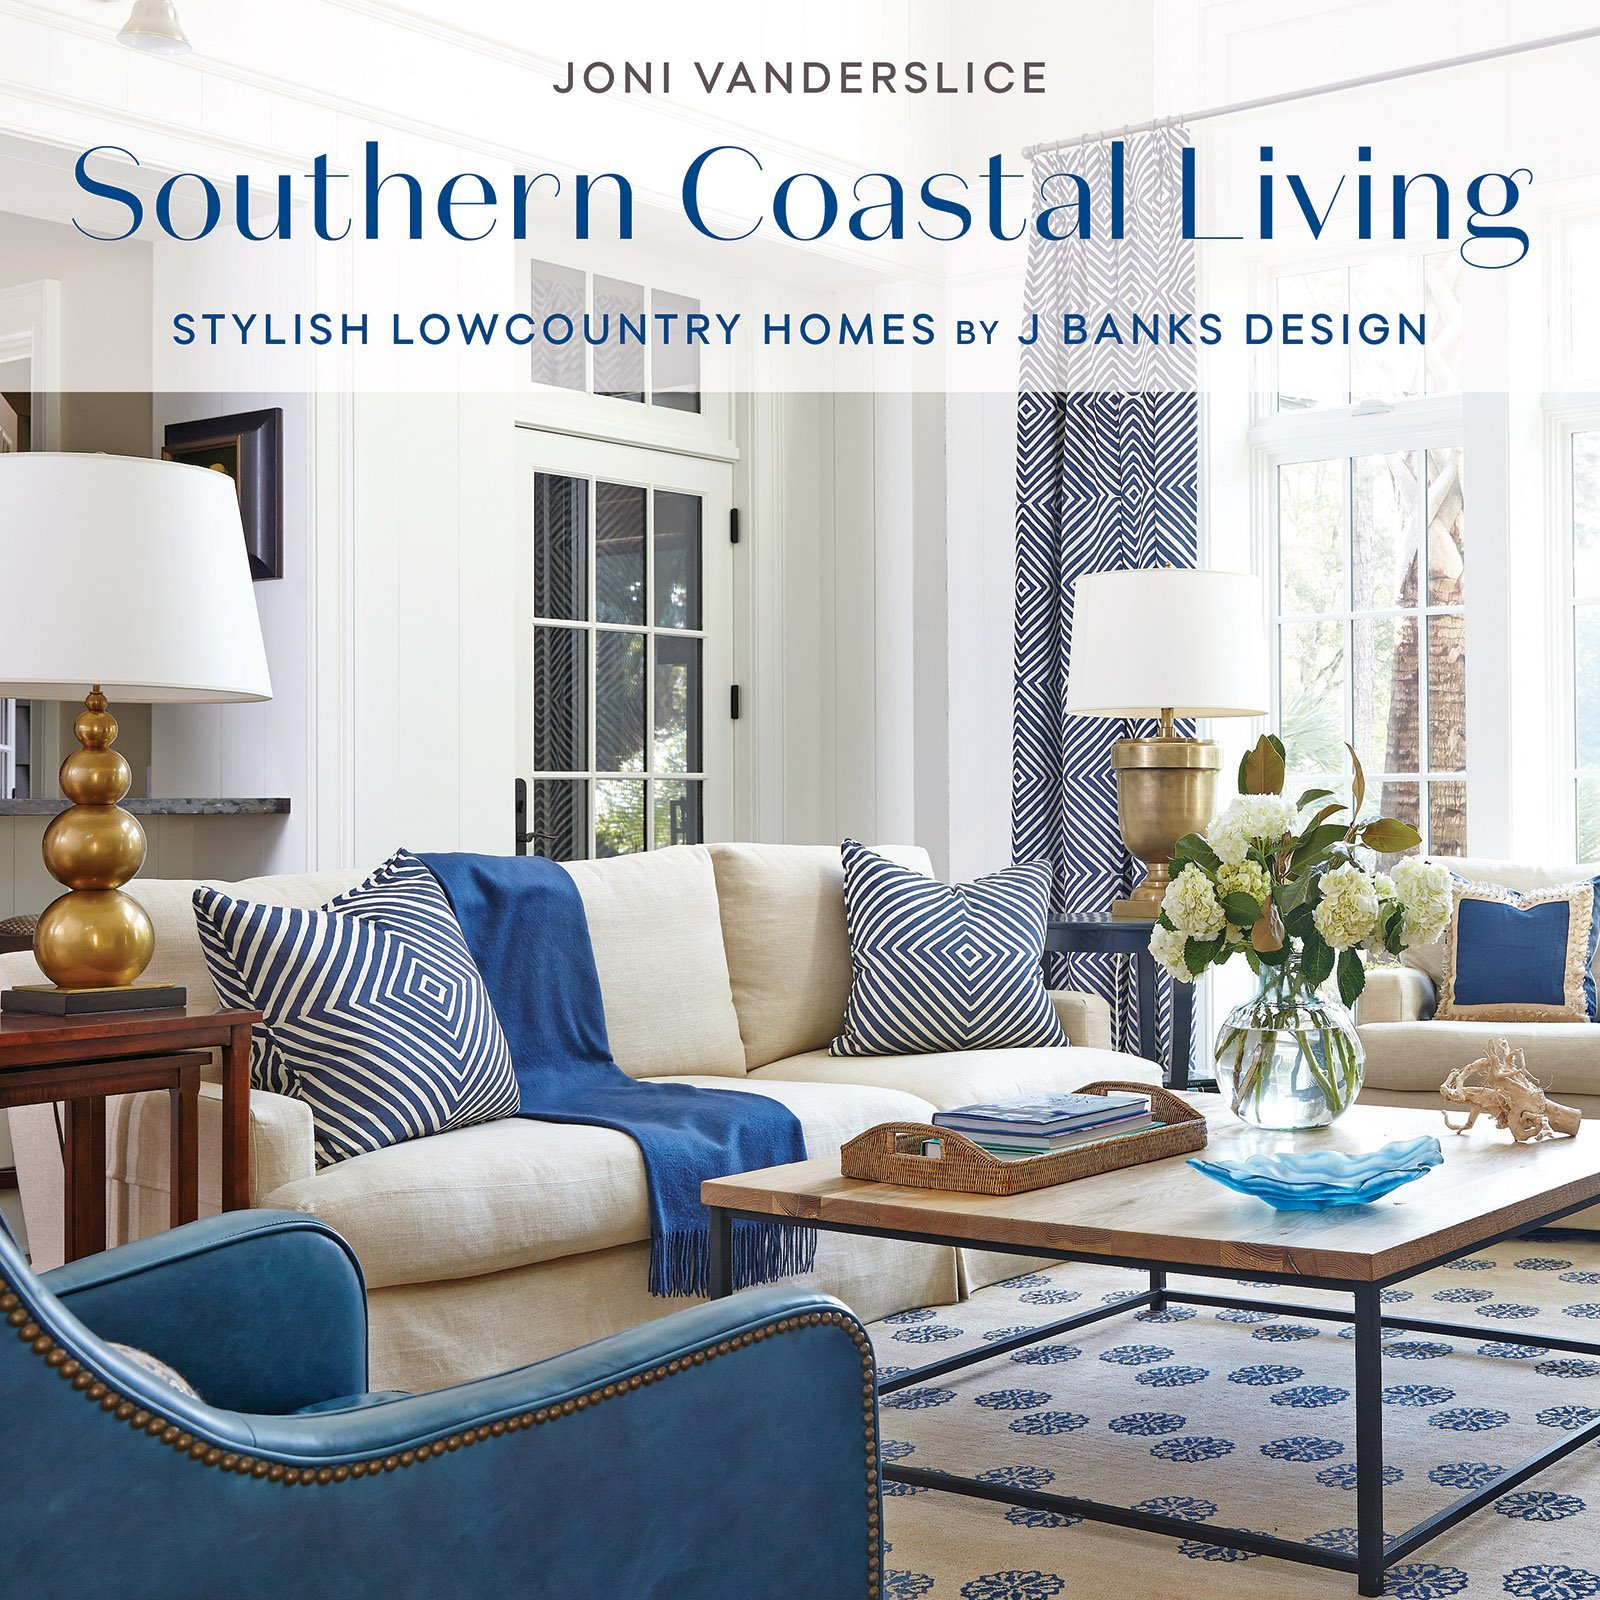 Southern Coastal Living: Stylish Lowcountry Homes by J Banks Design ...